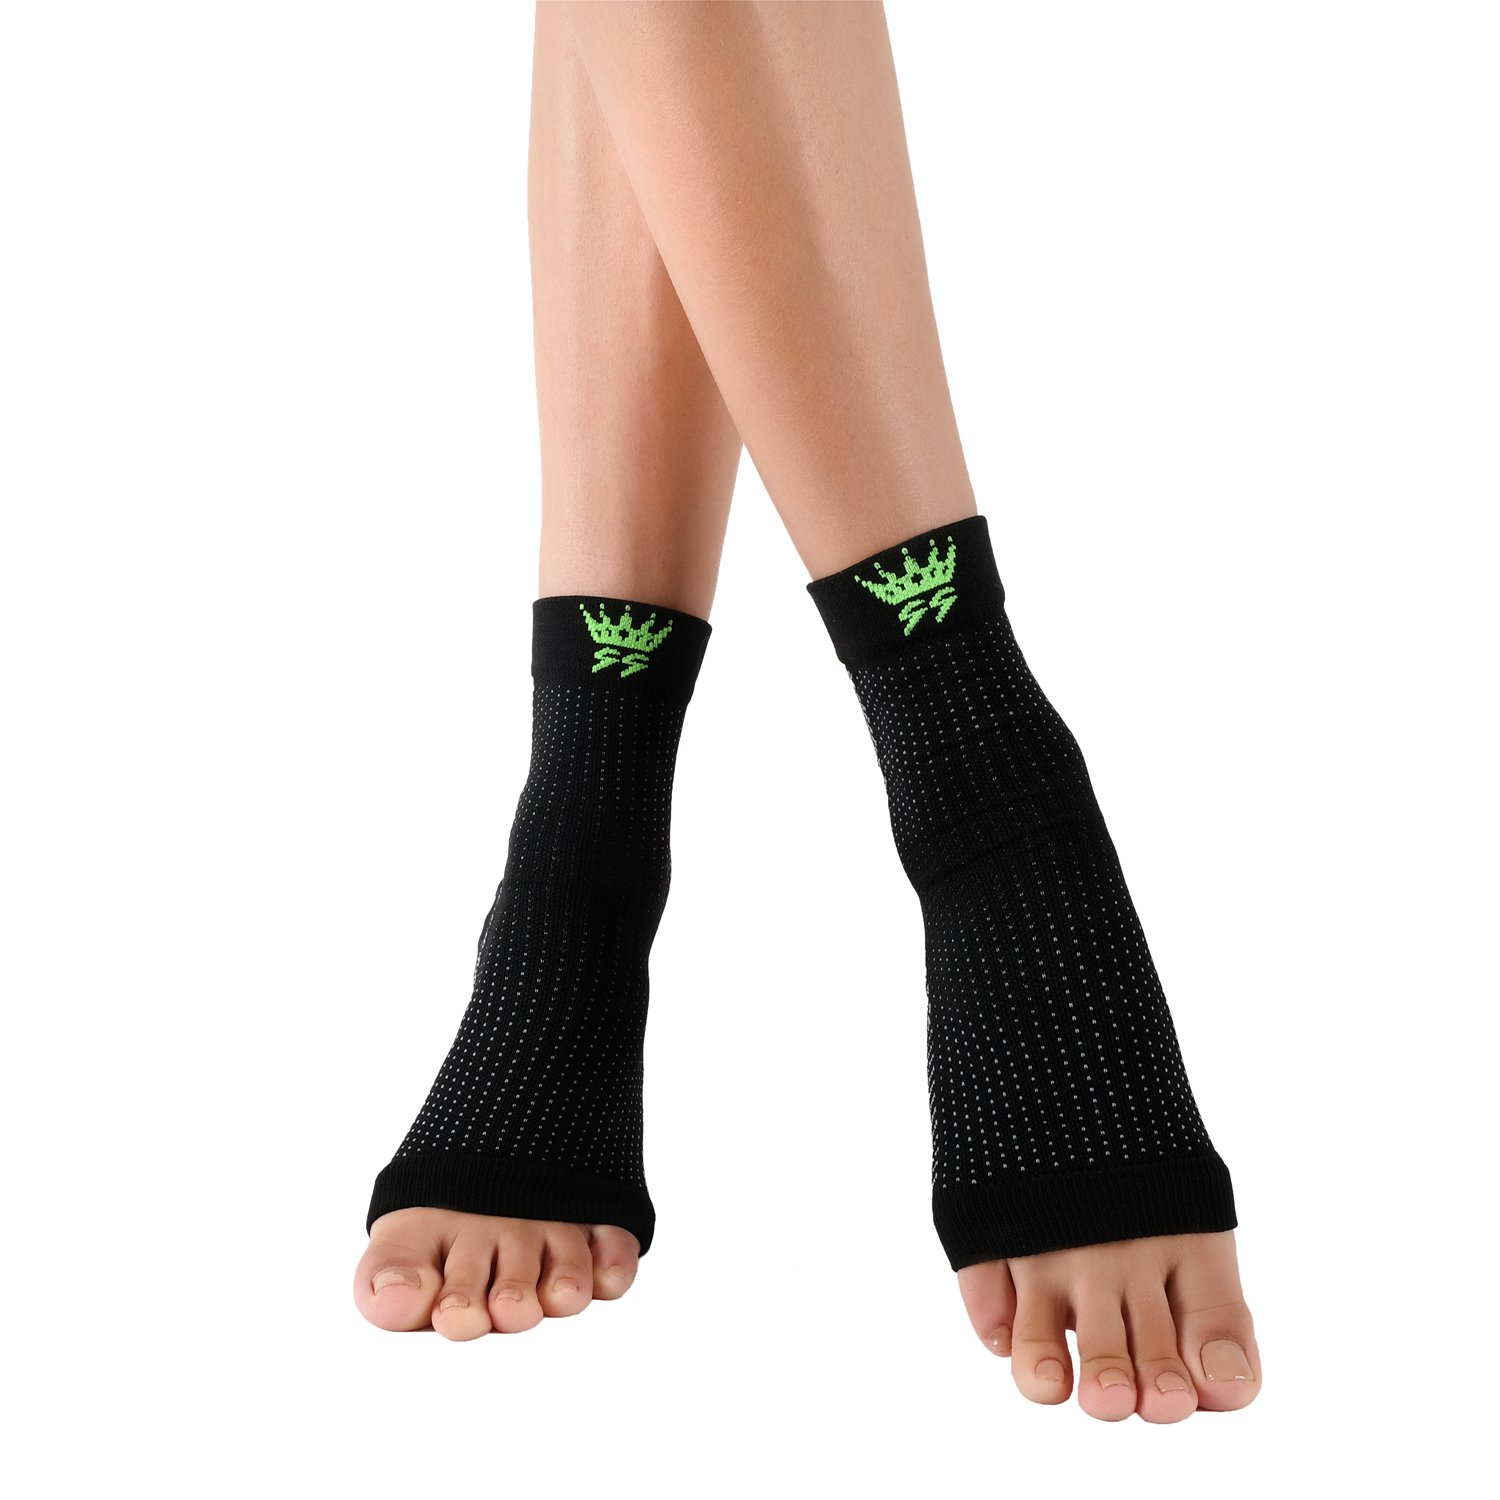 Best Plantar Fasciitis Socks Compression Foot Sleeve for Men & Women Heel Pain-Better Than Night Splint-Orthopedic, Supports Heel, Arch & Ankle, Treatment for Everytime Use with Arch Support